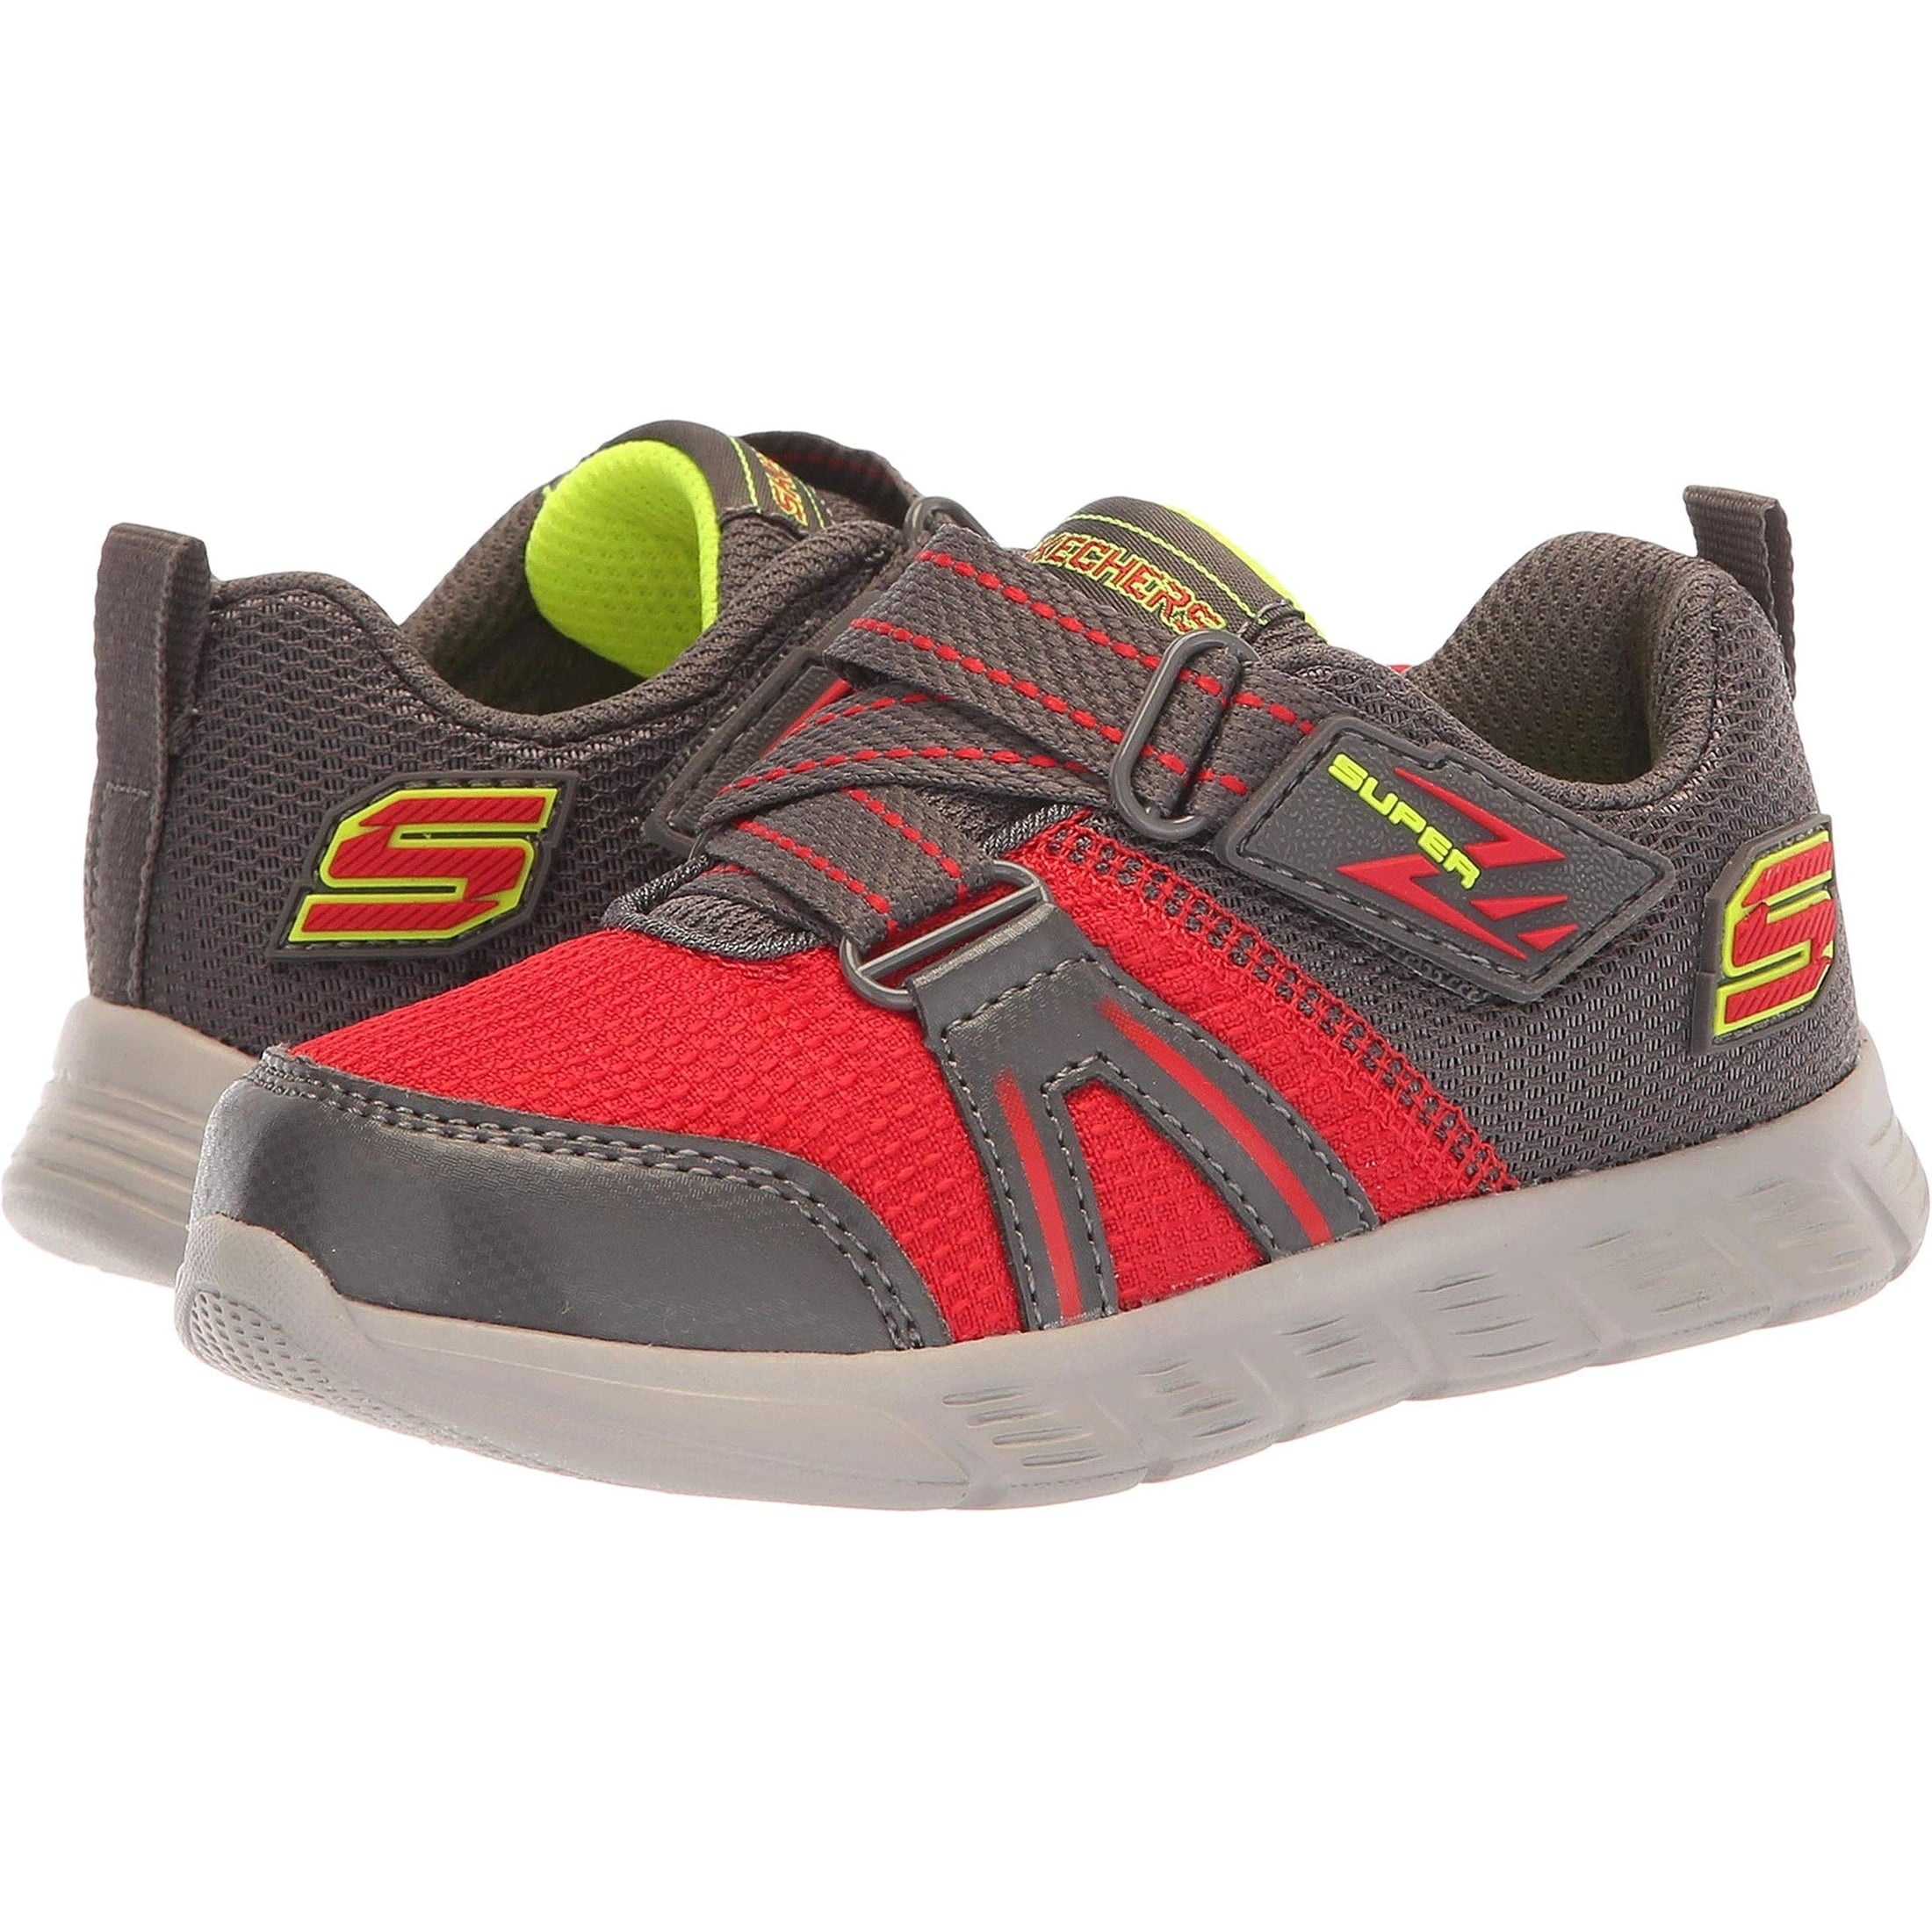 c390b56f1a1 Buy Skechers Athletic Online at Overstock | Our Best Boys' Shoes Deals